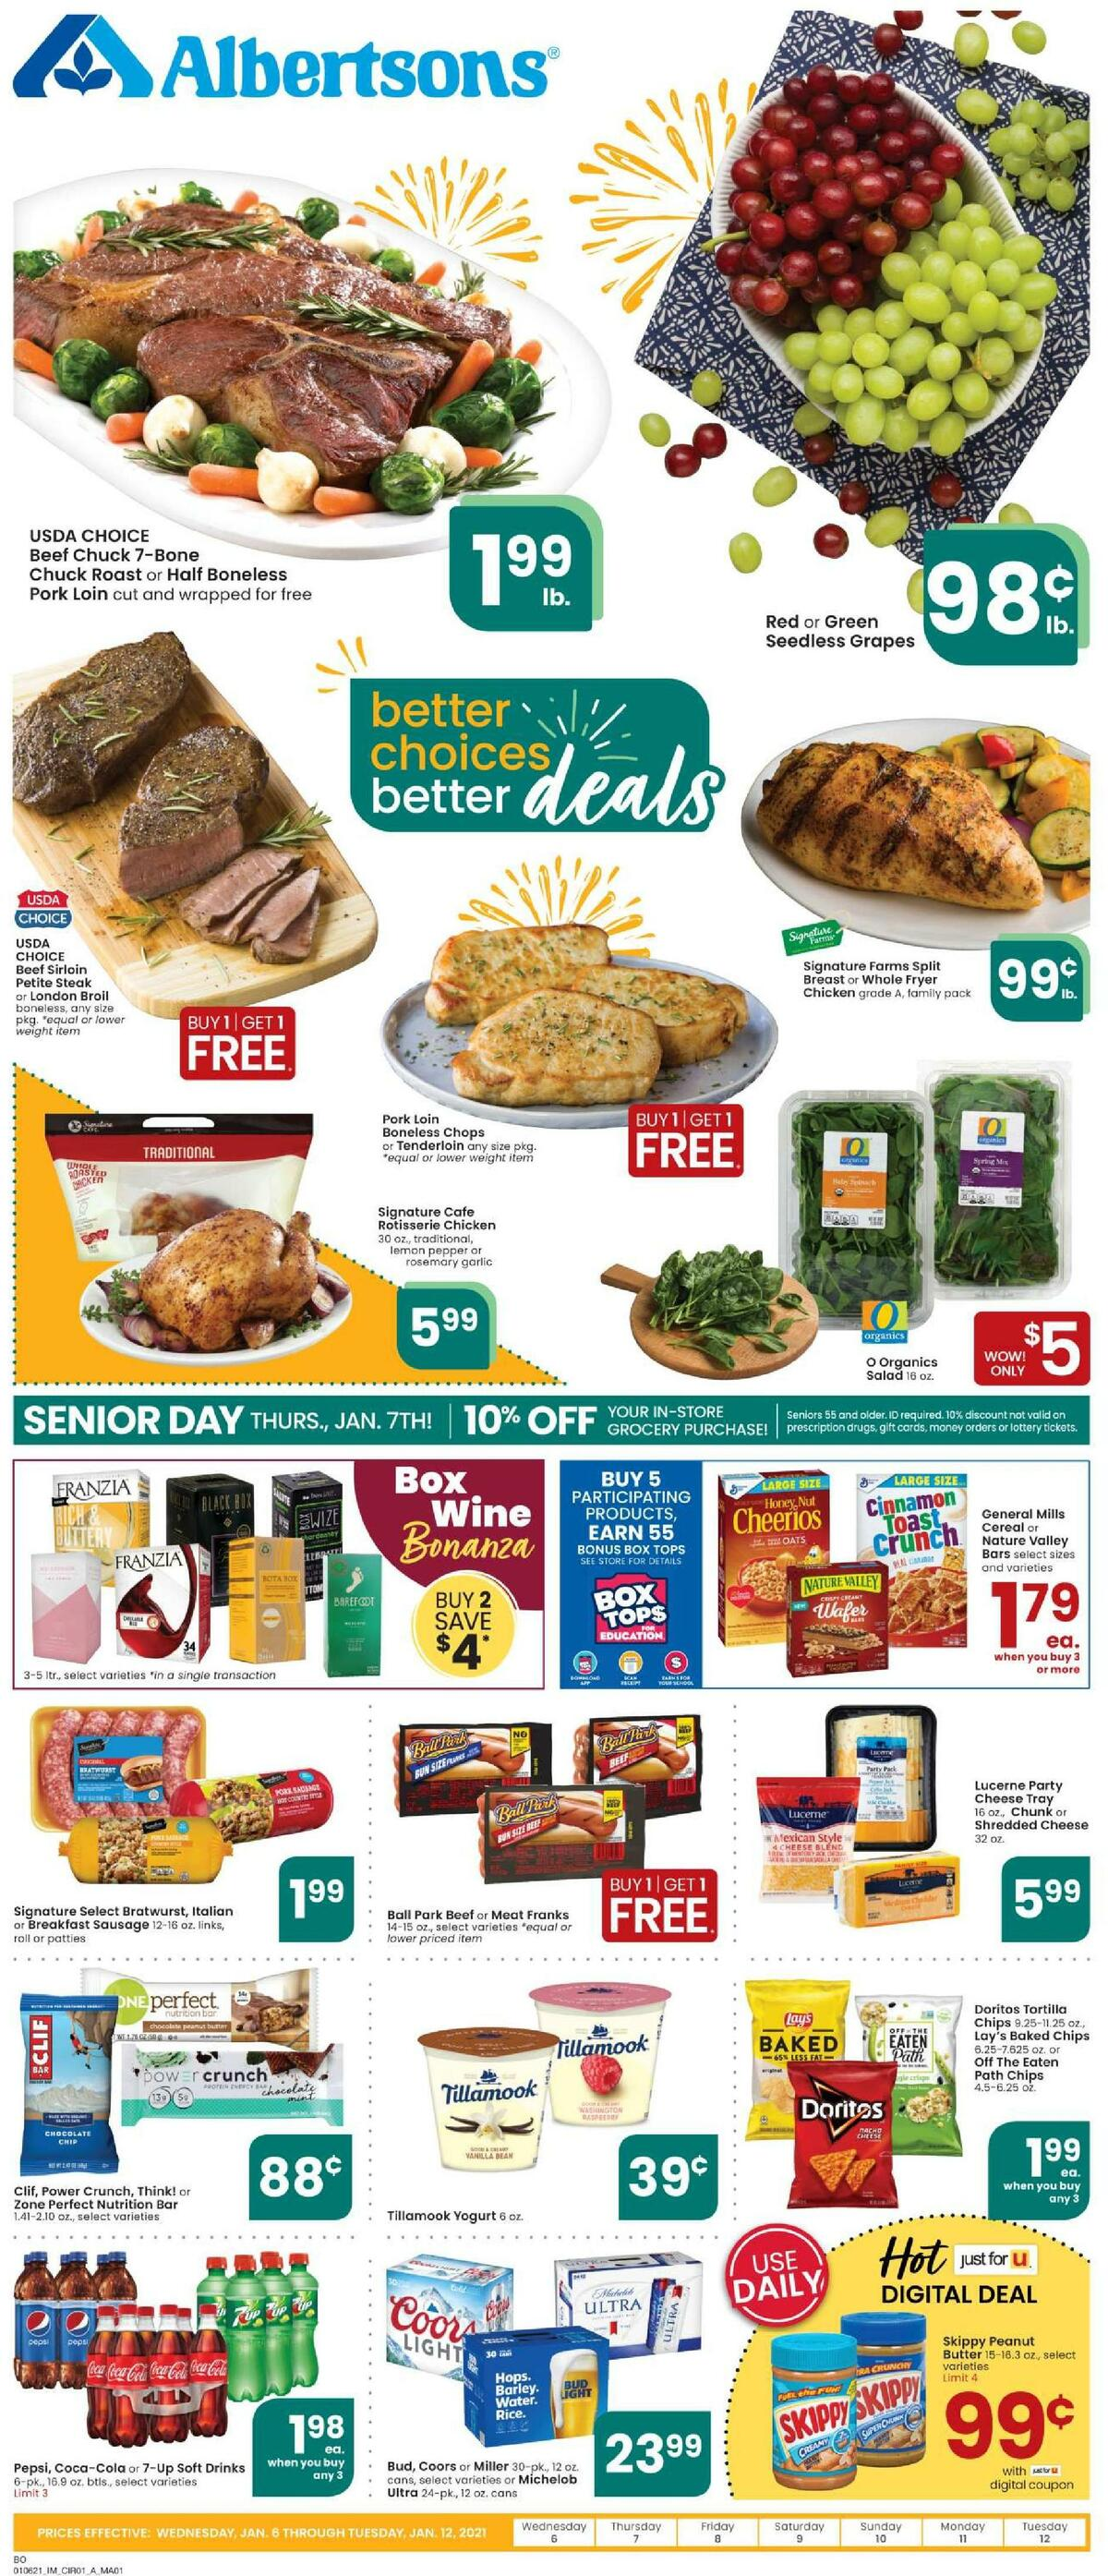 Albertsons Weekly Ad from January 6